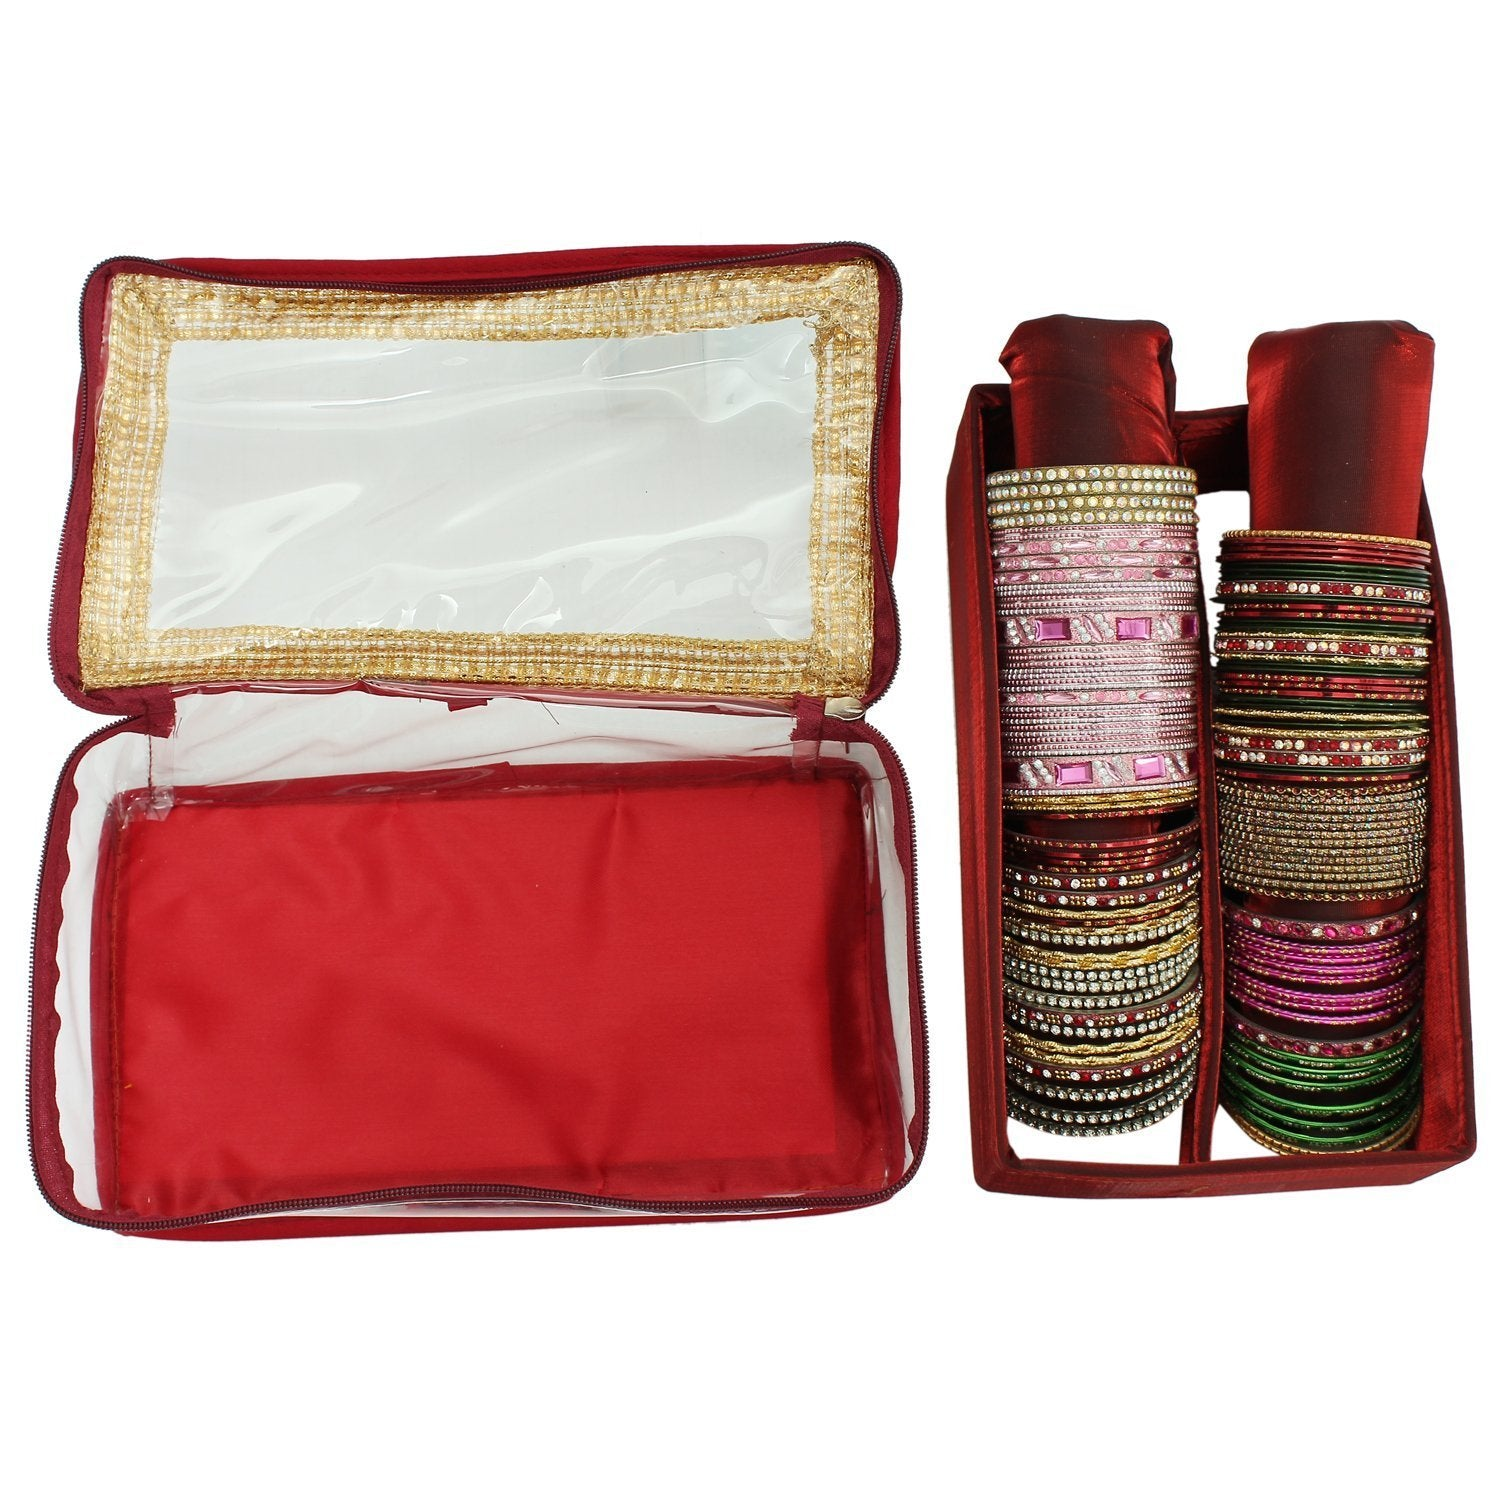 Maroon Bangle Box (2 Rods) - Bagaholics Gift